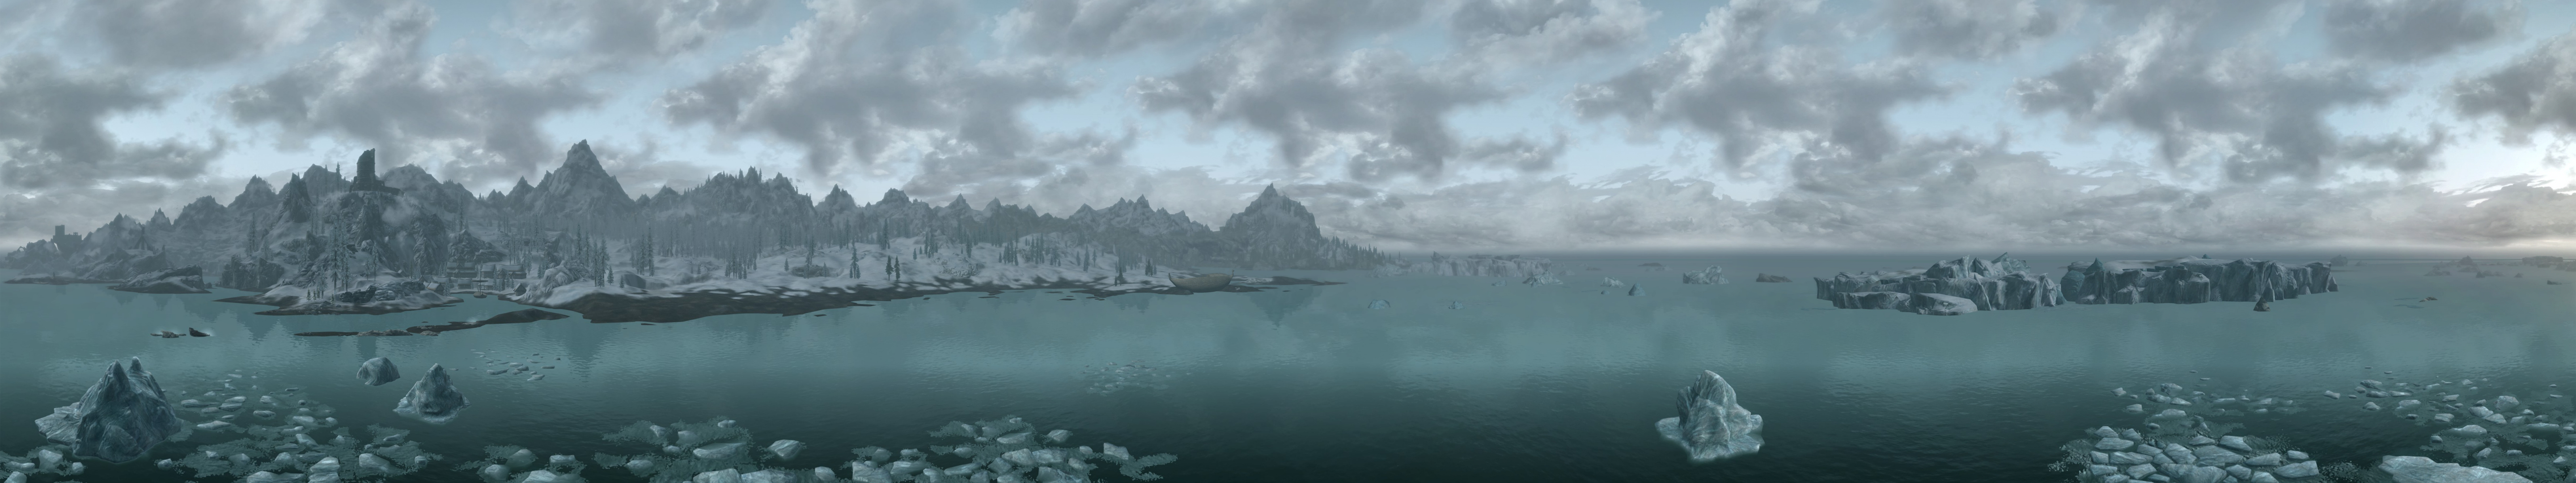 Skyrim Eyefinity Wallpapers Nerd Art Forum 5760x1080